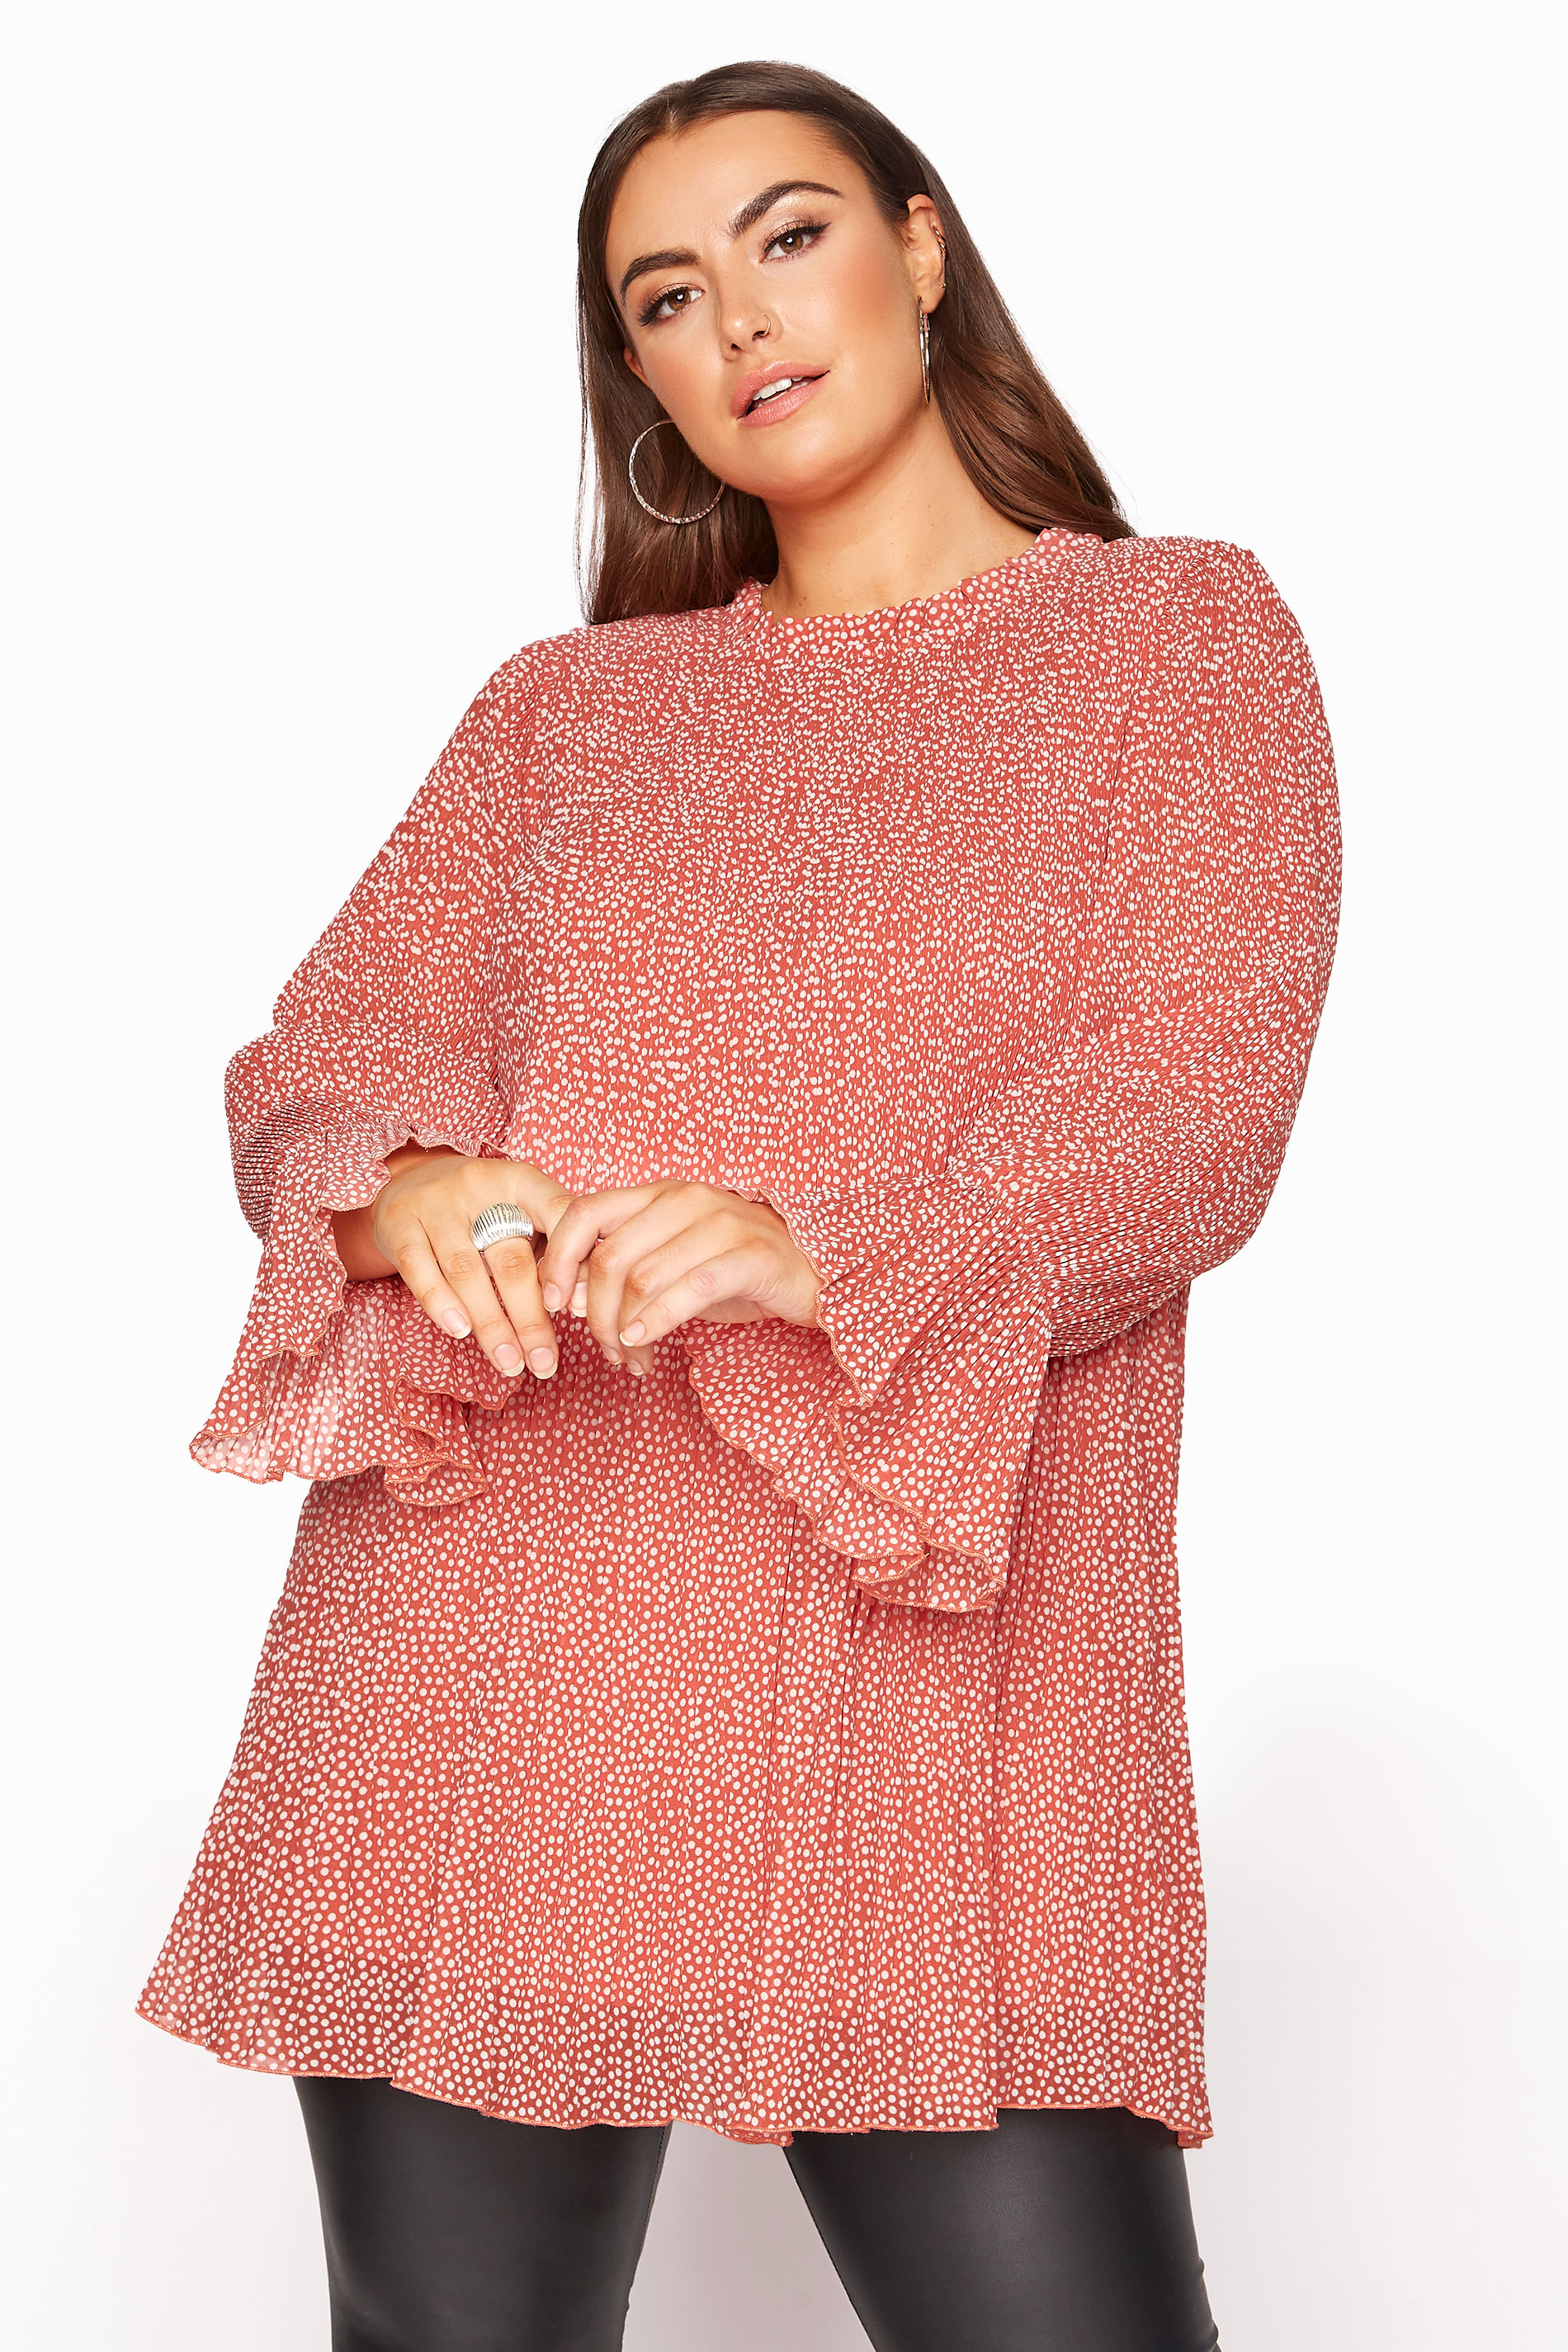 YOURS LONDON Pink Polka Dot Flared Sleeve Blouse_A.jpg